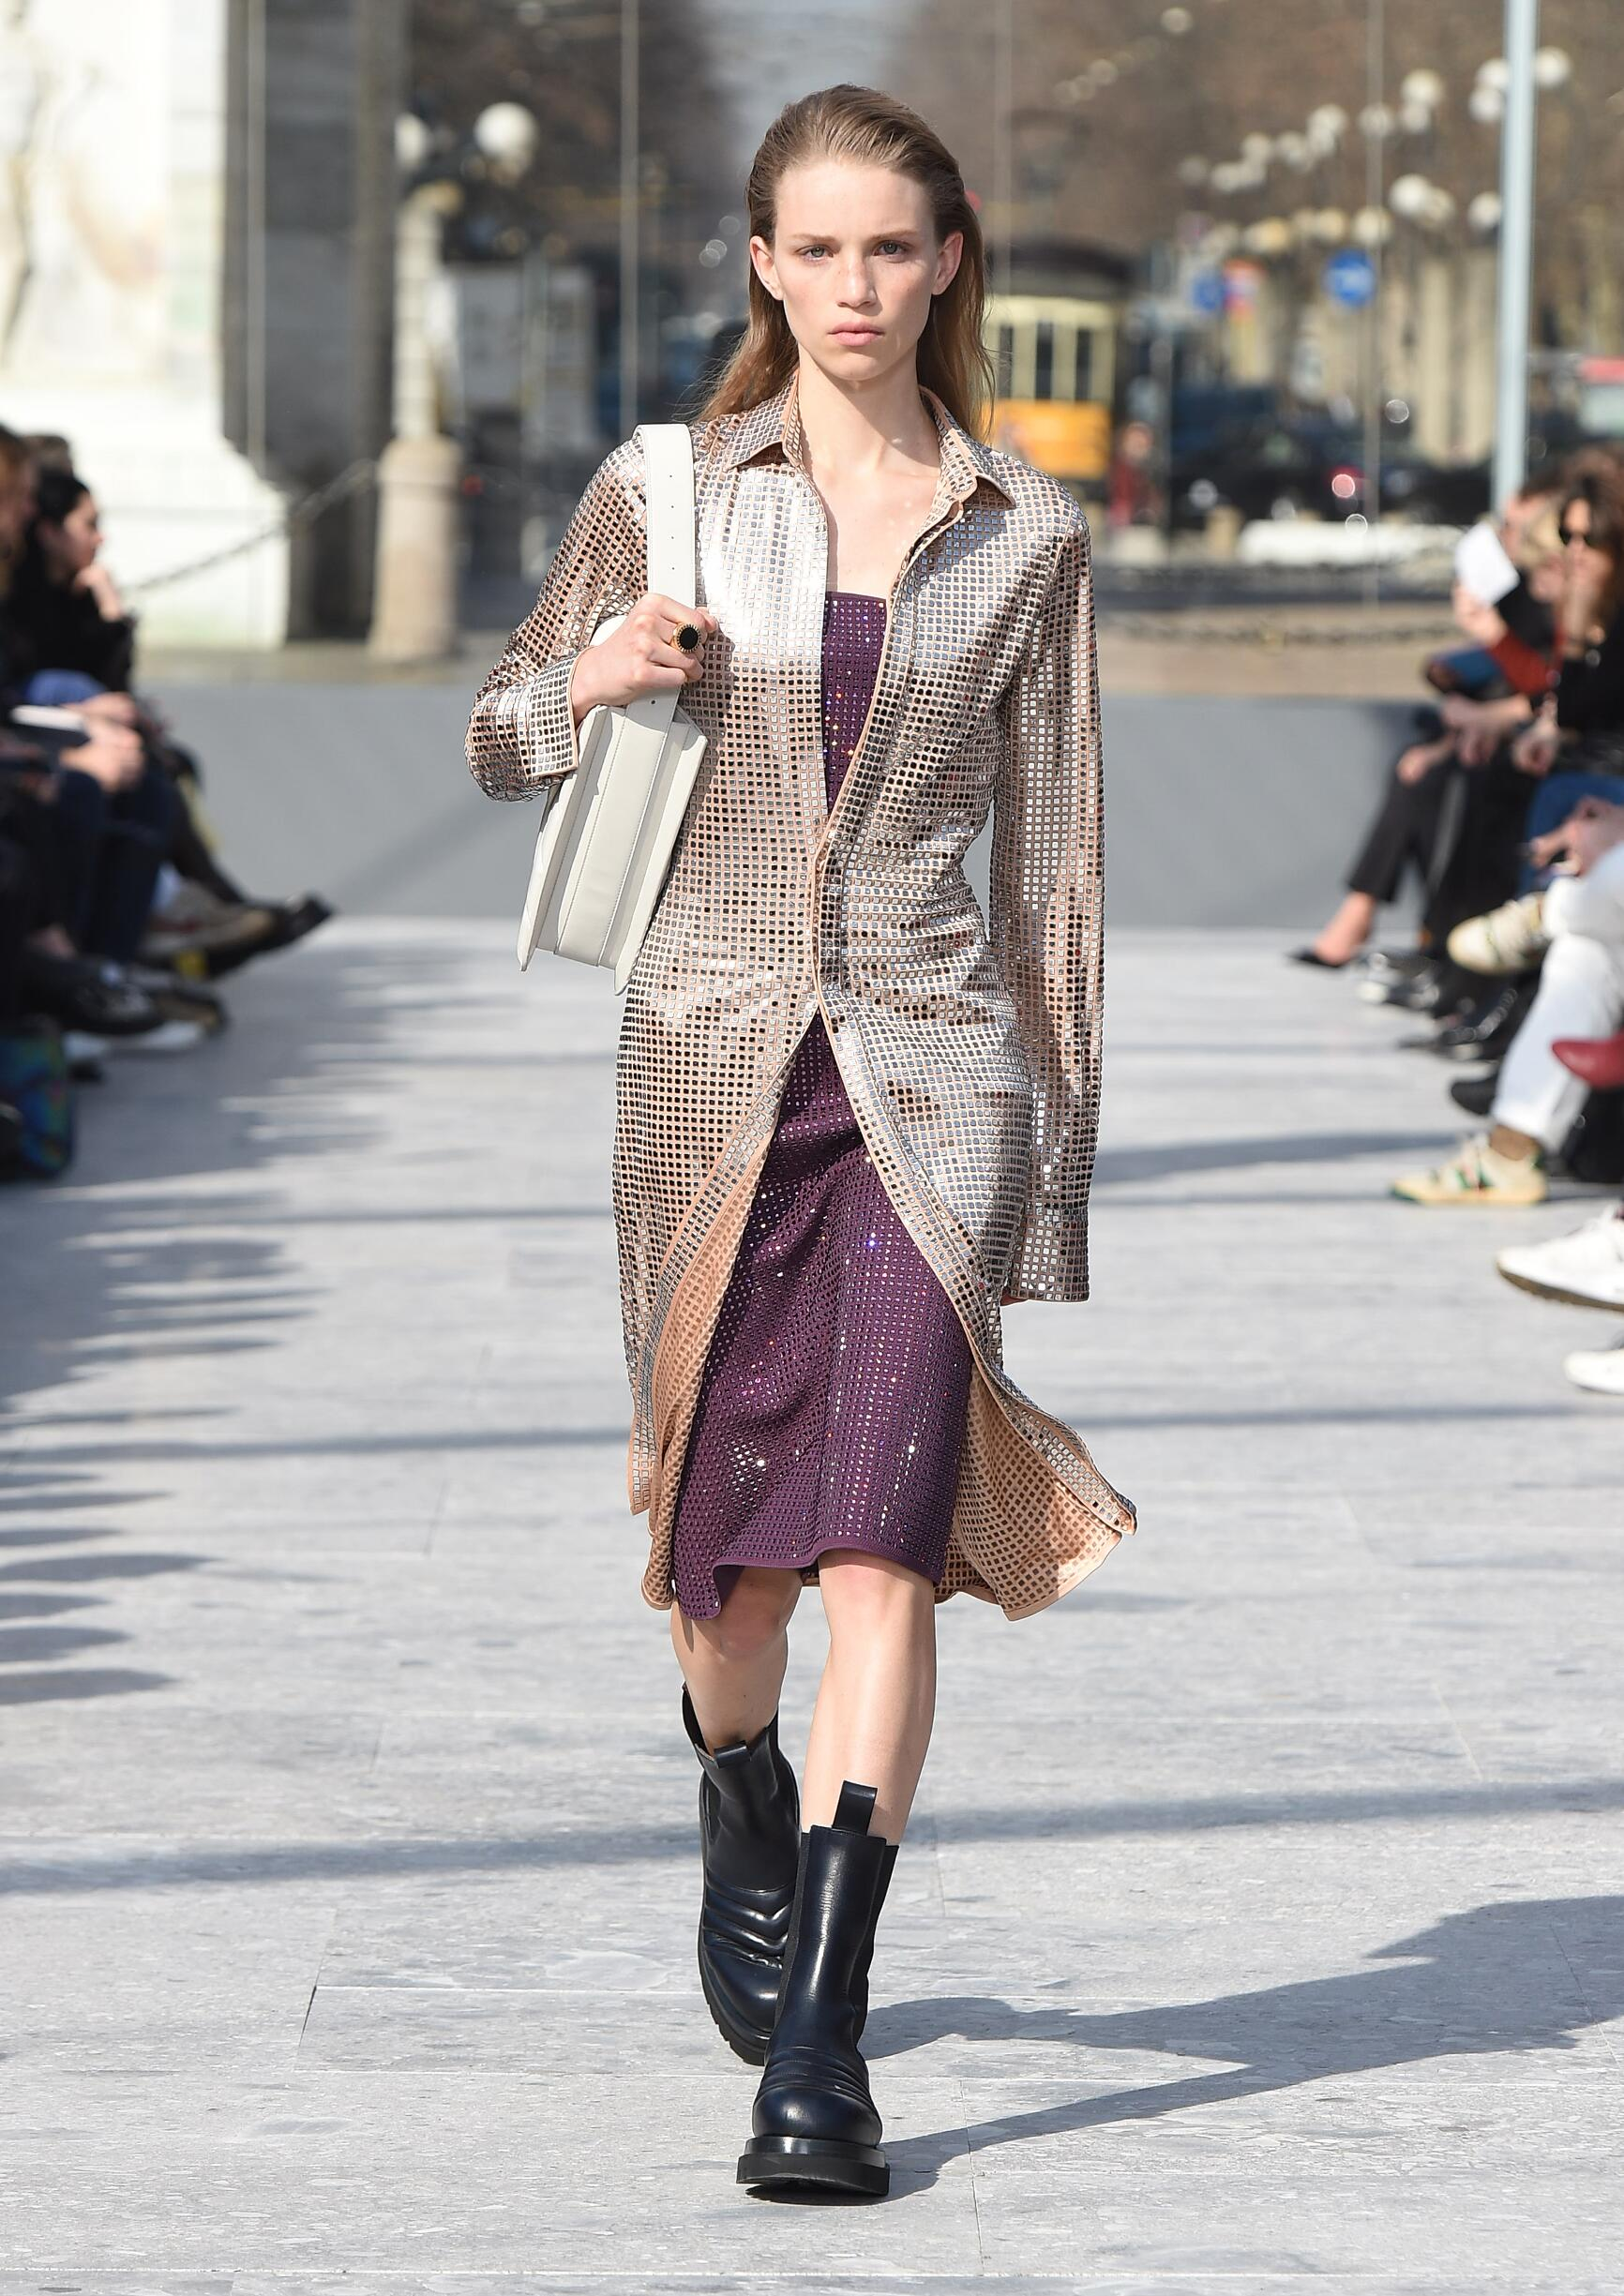 Bottega Veneta Womenswear Fashion Show